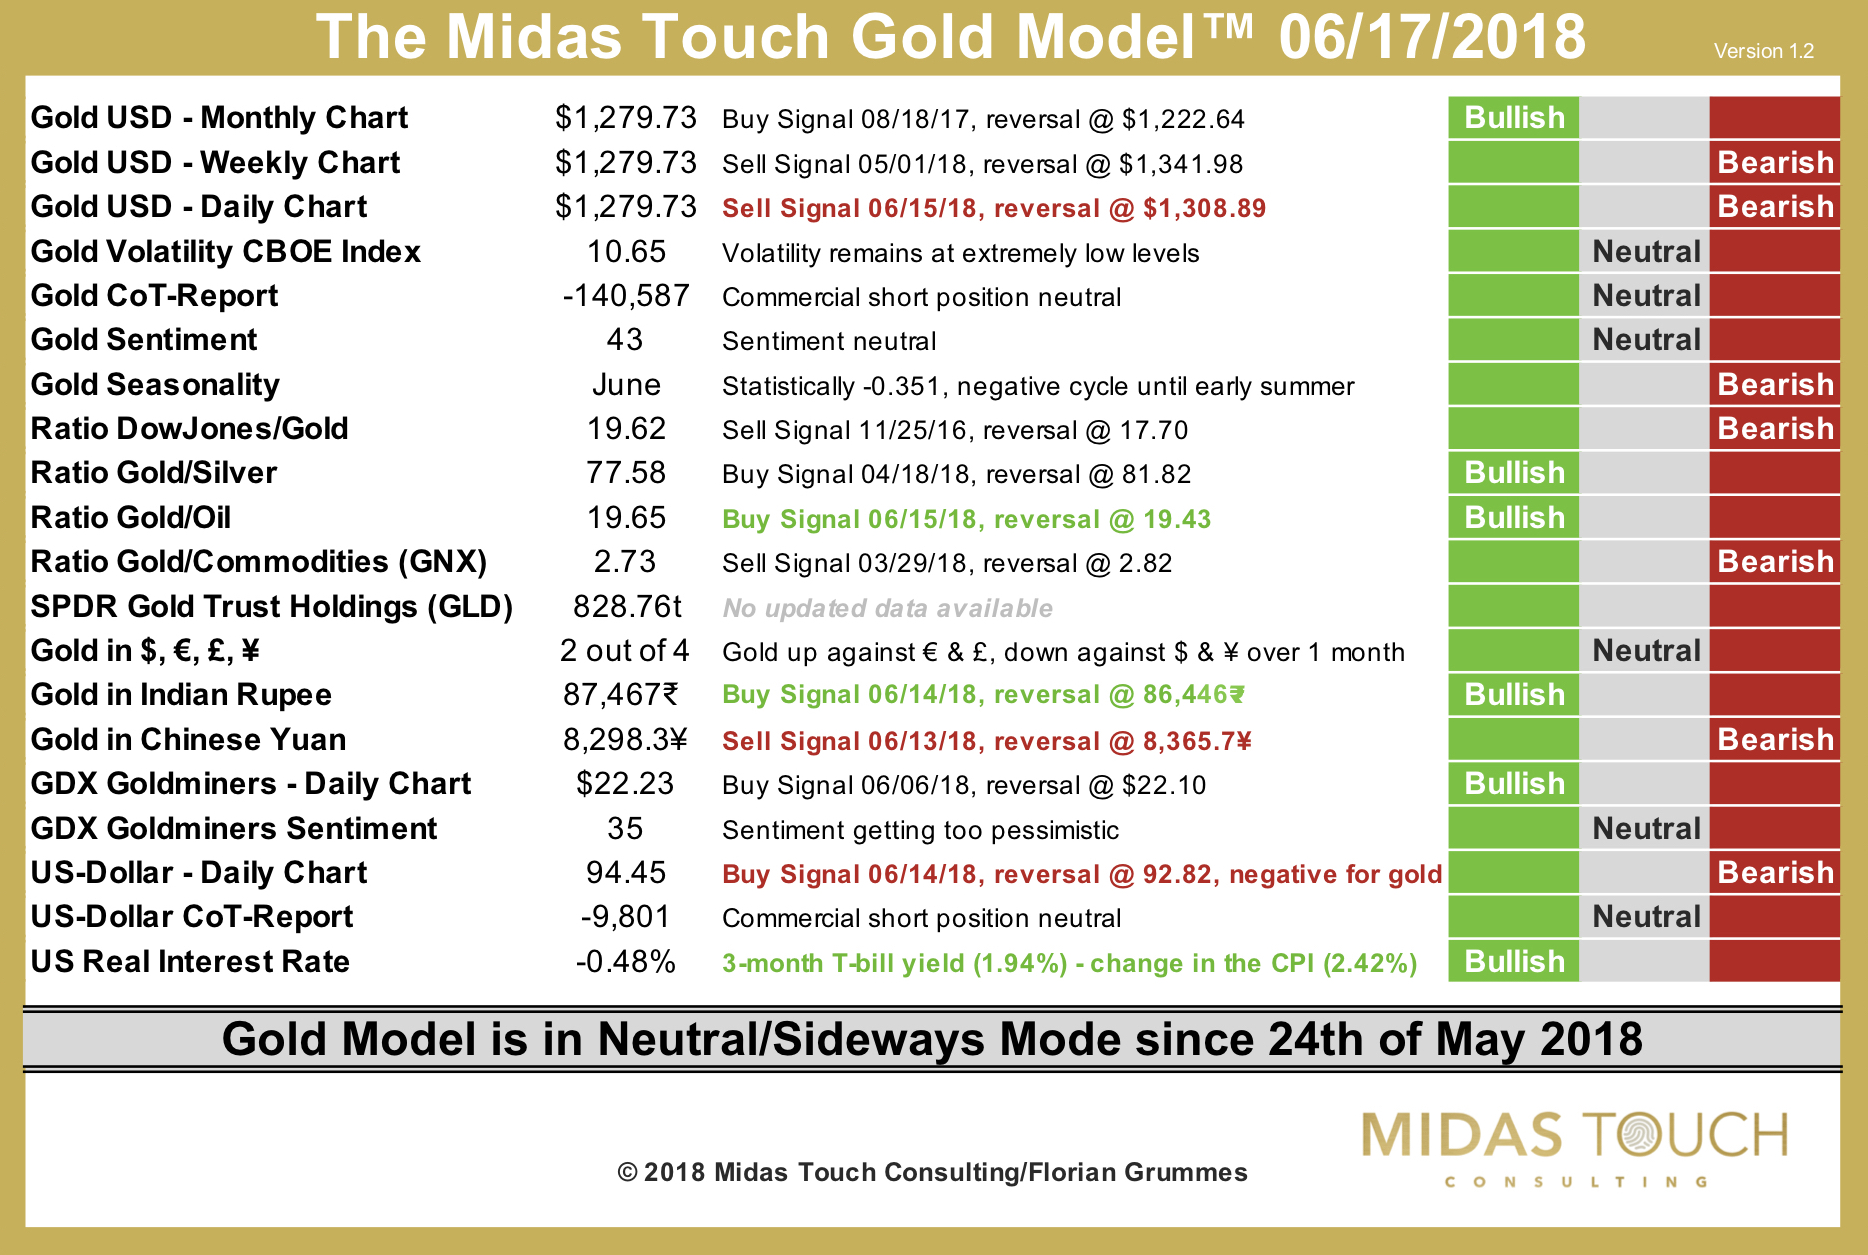 The Midas Touch Gold Model™ as of June 17th, 2018